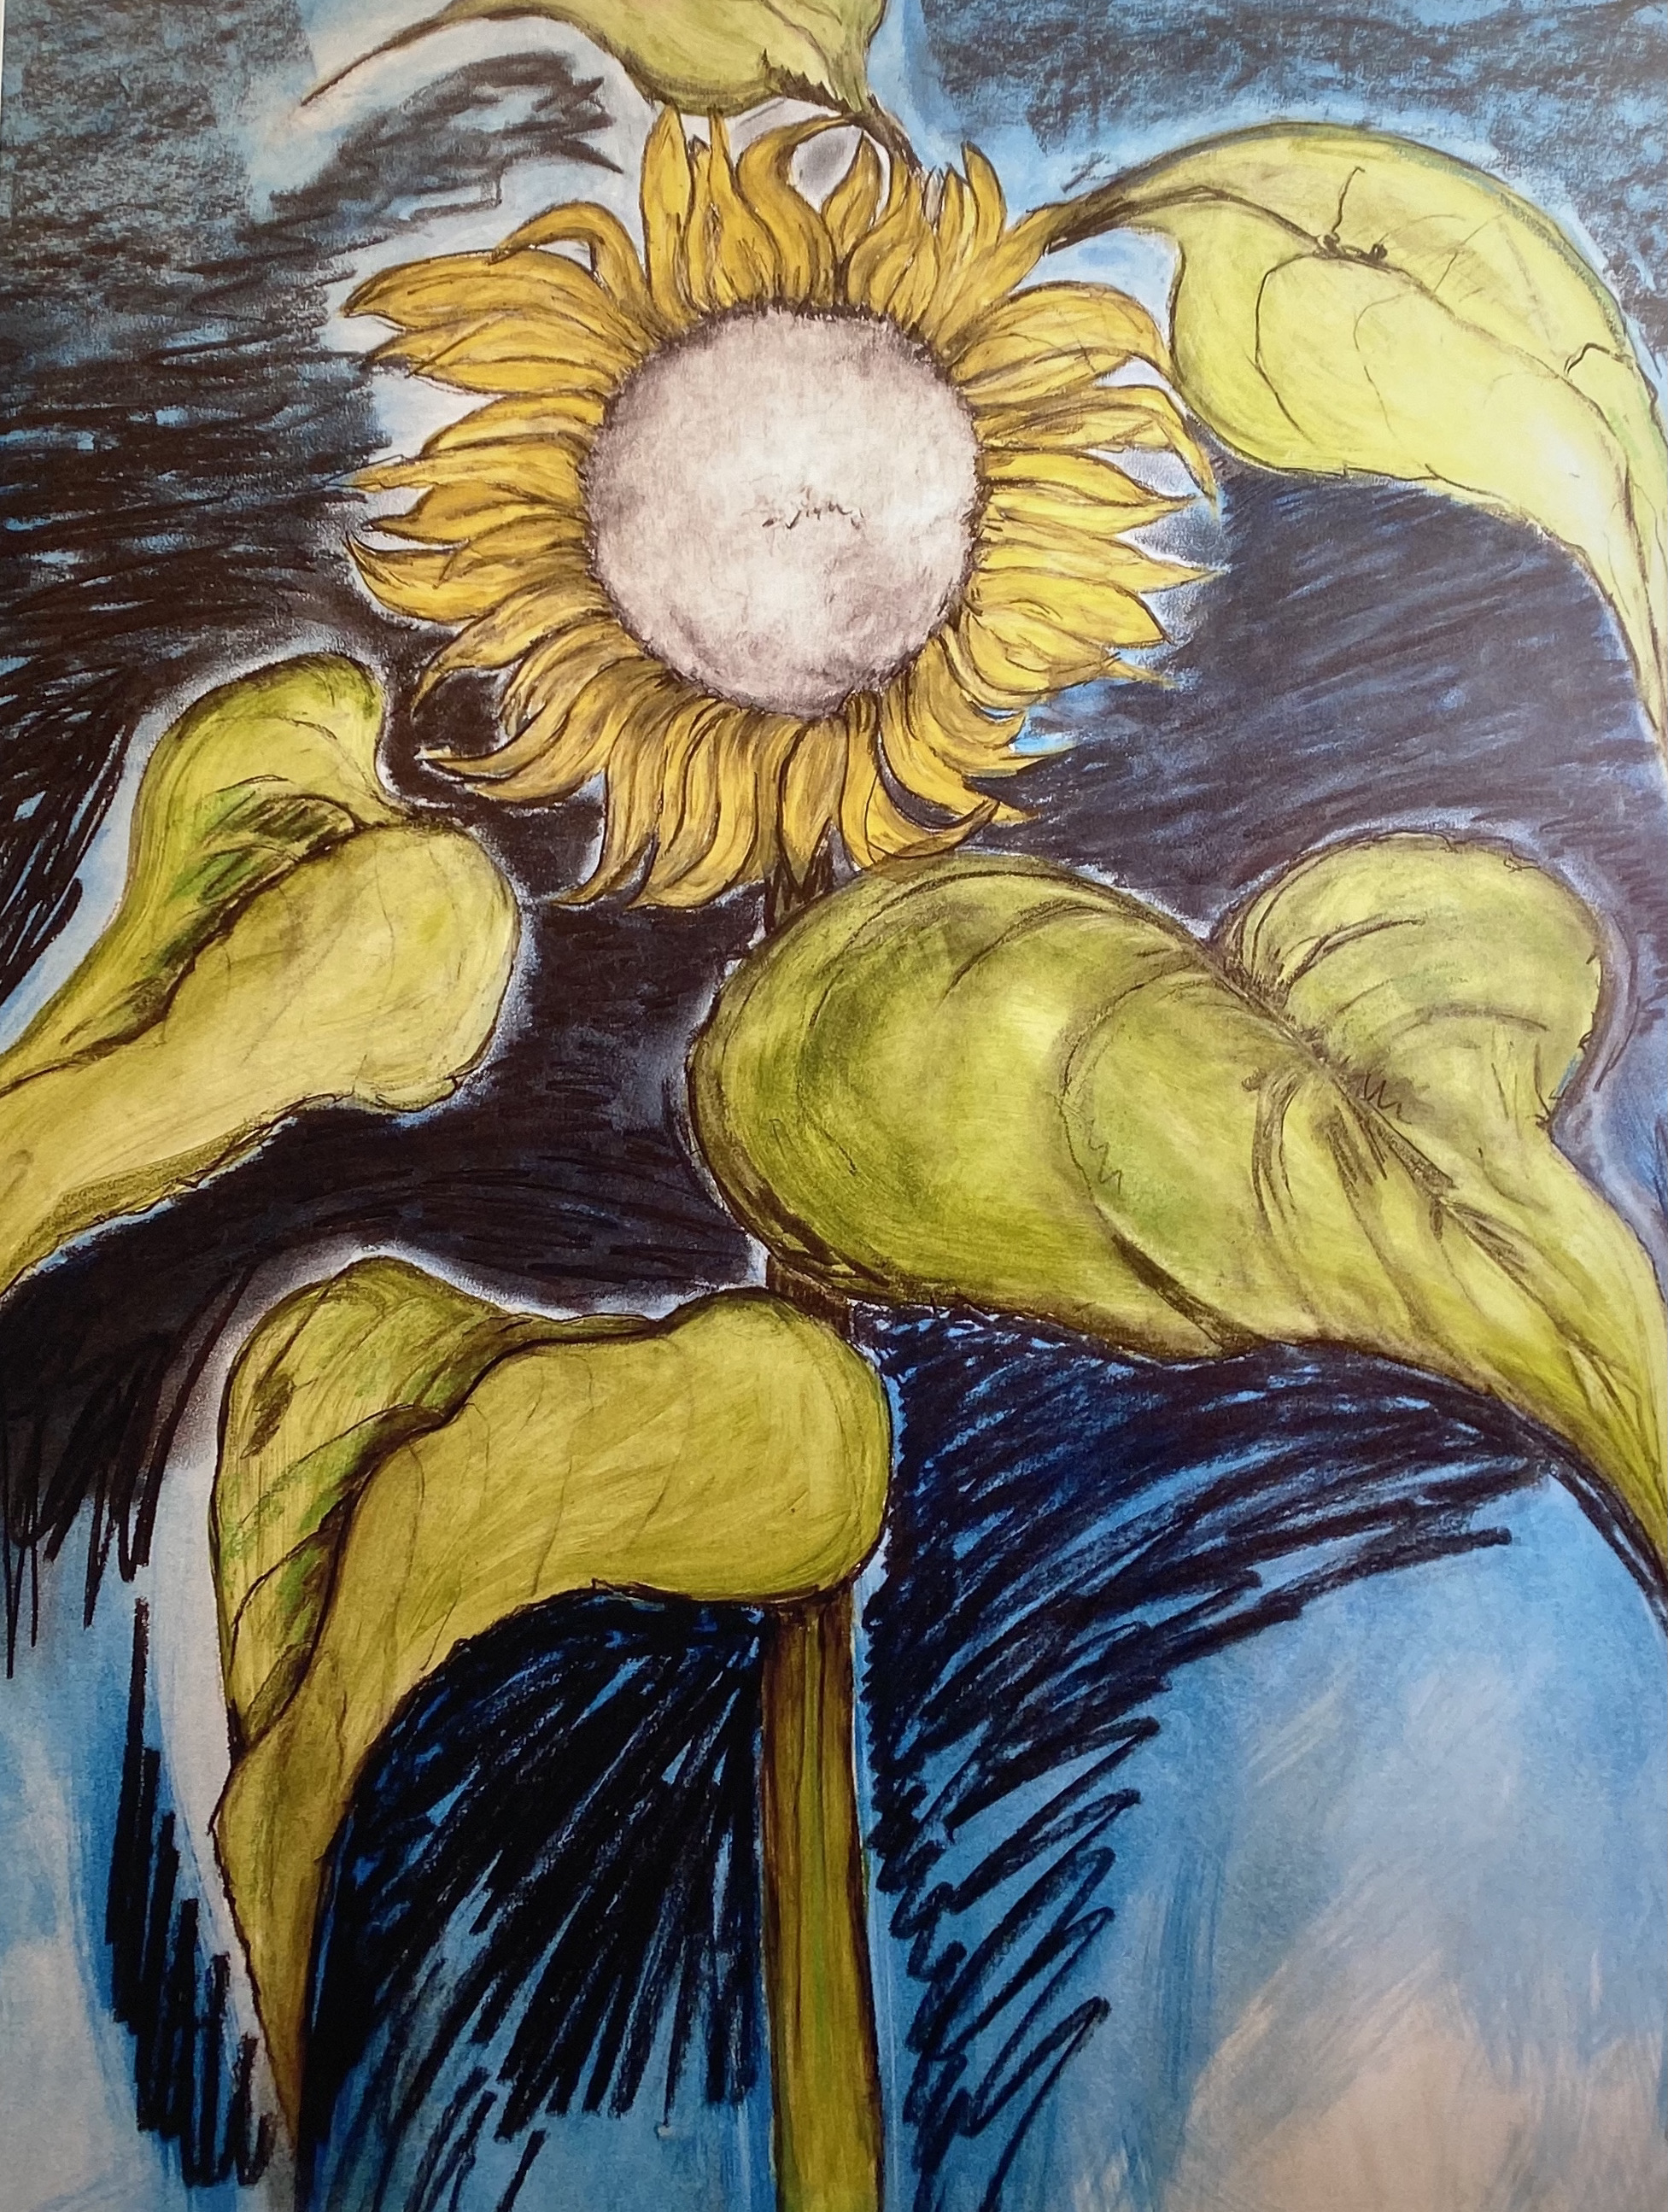 ' Sunflower '. mixed media on Fabriano, 116 cm h x 91 cm w